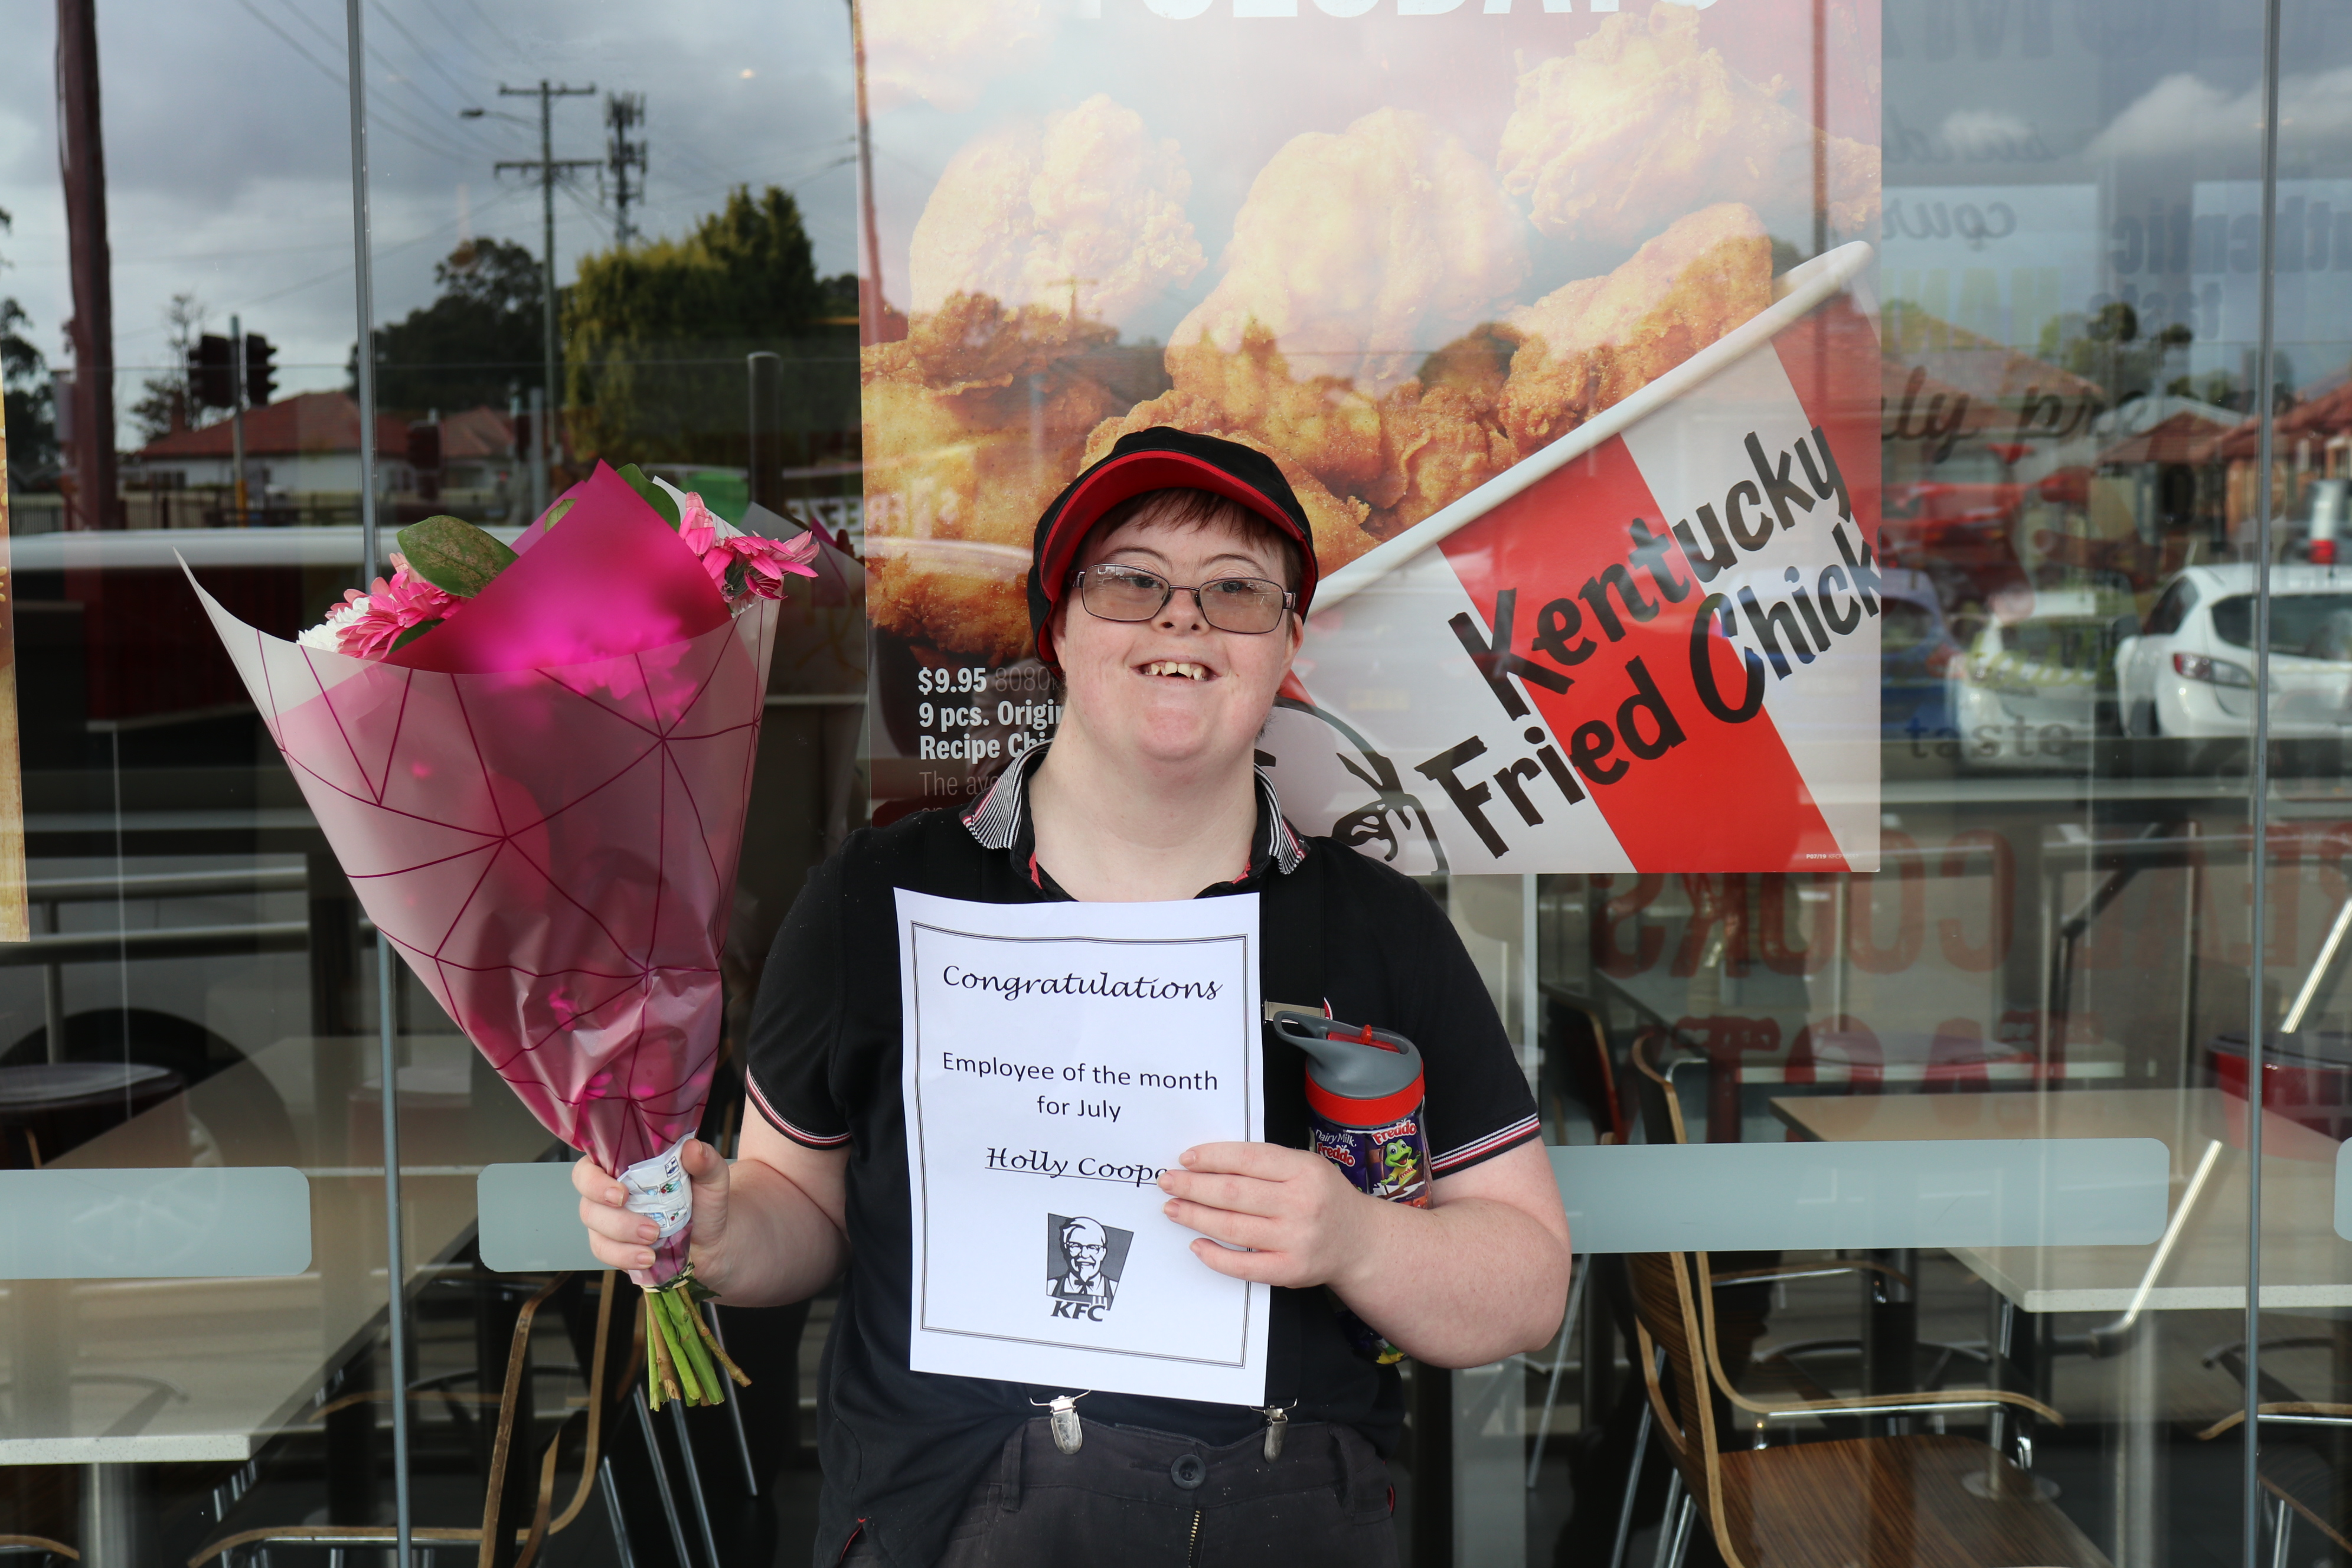 Holly Cooper Employee of the Month